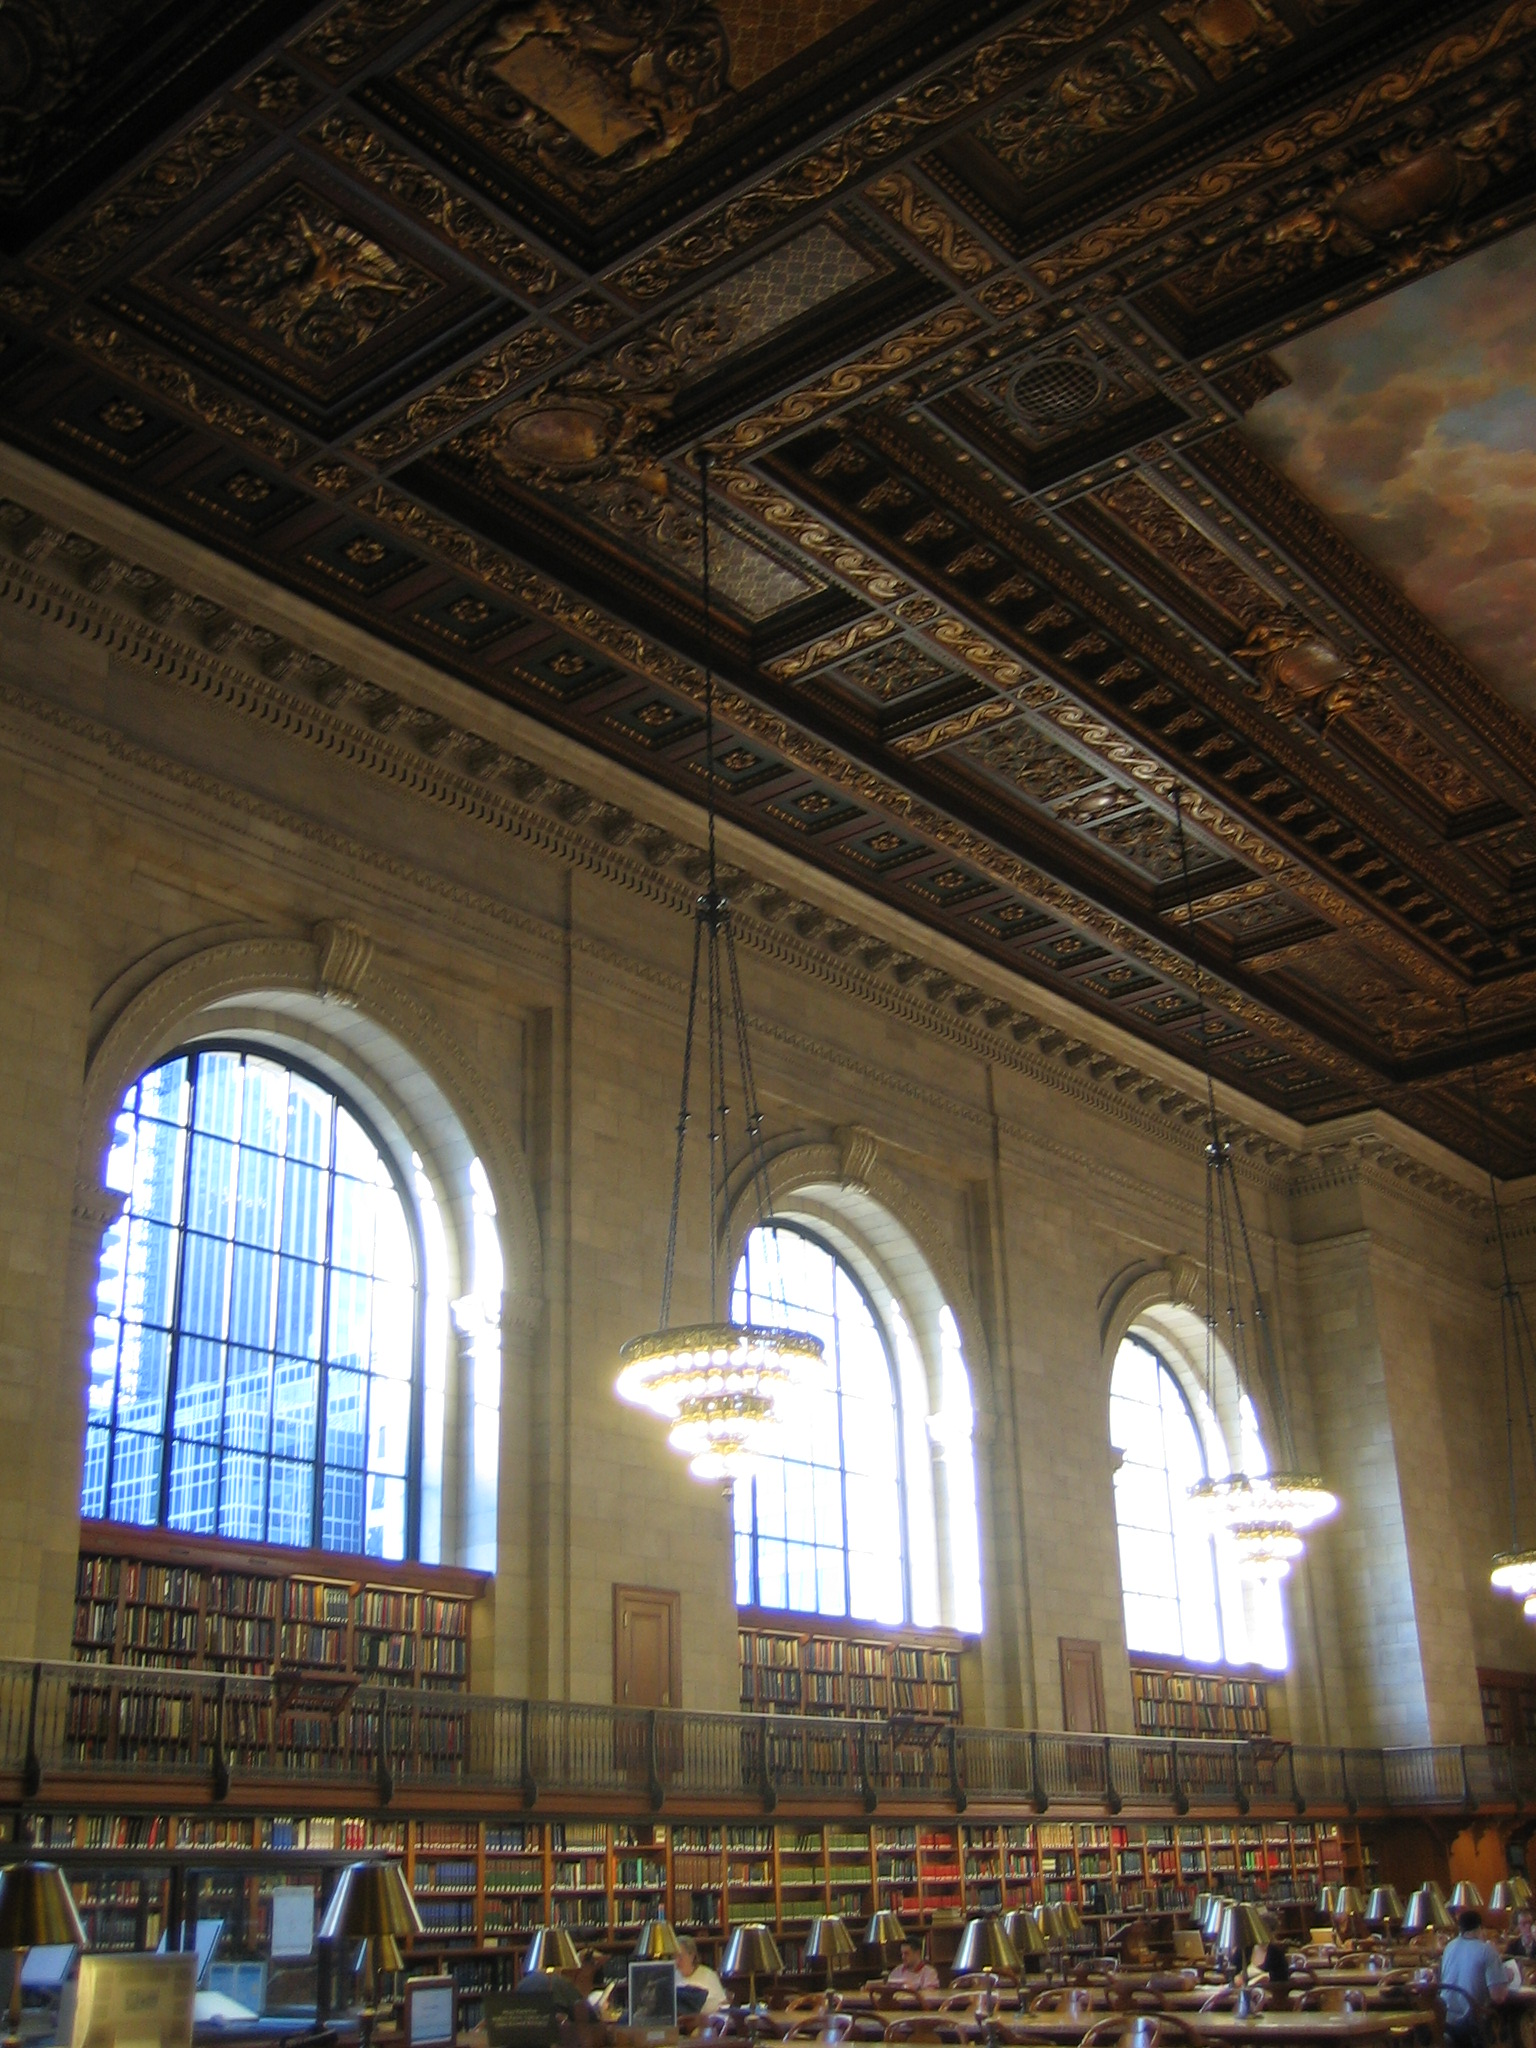 Third Floor Reading Room, New York Public Library at Bryant Park - Sometimes a room becomes more than a room, and the reading room on the third floor of the NYPL at Bryant Park is just that. Housed inside a stunning Beaux-Arts building, the reading room is perhaps the most magnificent space in the entire city. We become architects to make spaces like this. The reading room fools by making the pursuit of perfect edifice achievable, but it laughs at mortals and continues to hide its secrets within the walls, desks, books and streams of perfect afternoon light.photo: Jonathon